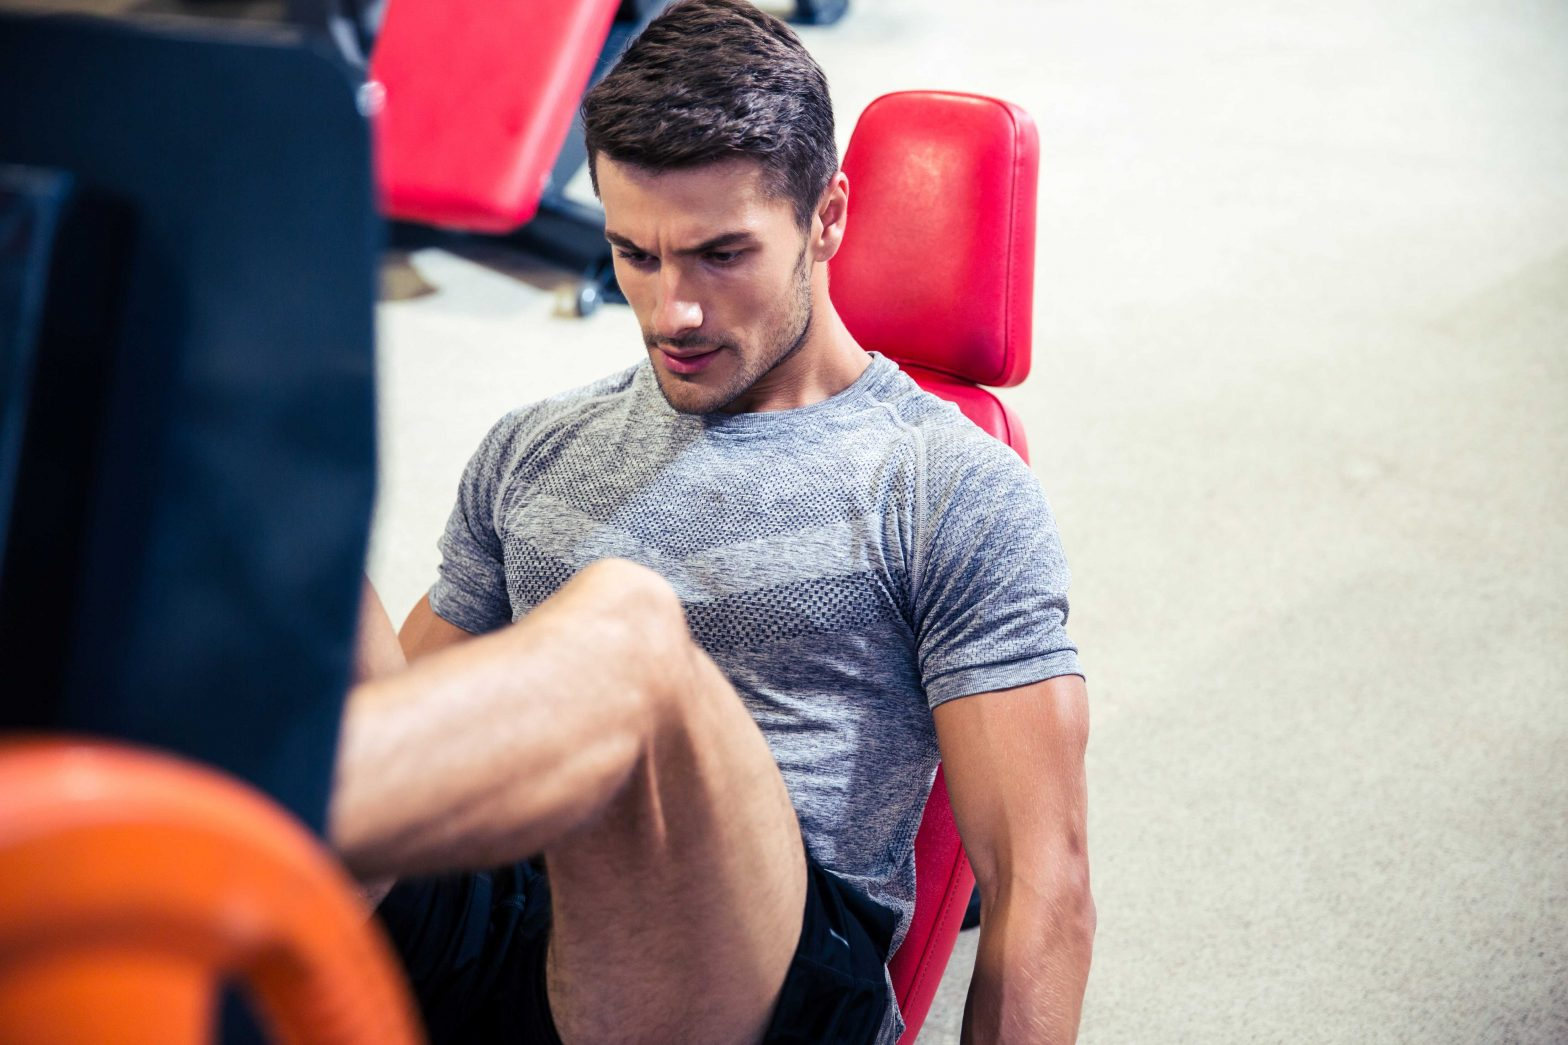 What Exercise Increases Testosterone Most? - Male